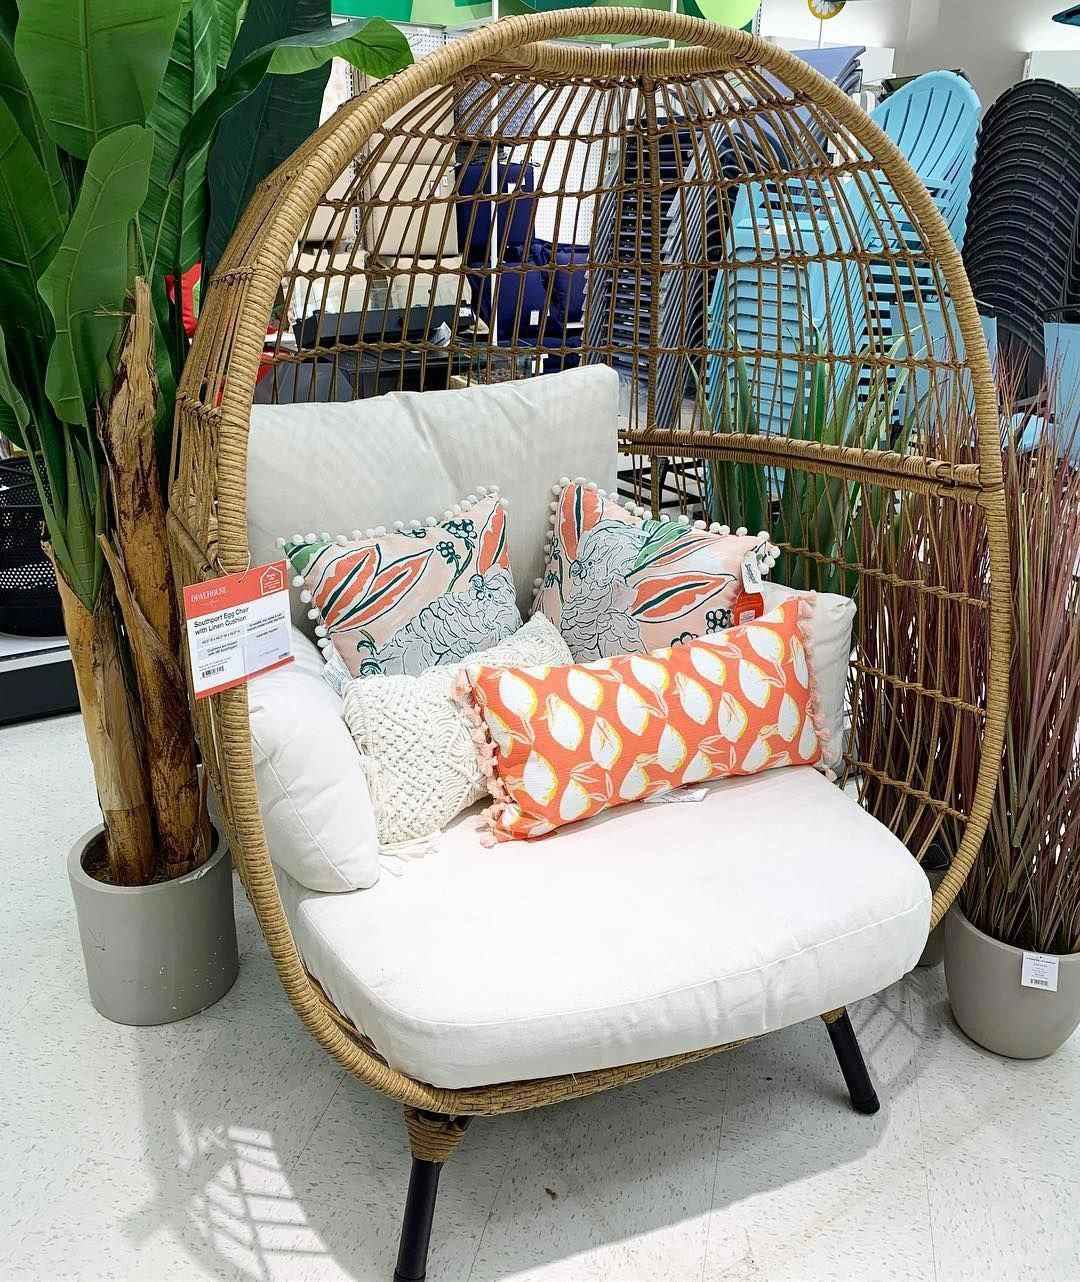 Find Out More Details On Patio Decorating Ideas Have A Look At Our Internet Site Target Patio Furniture Patio Chairs Retro Patio Furniture